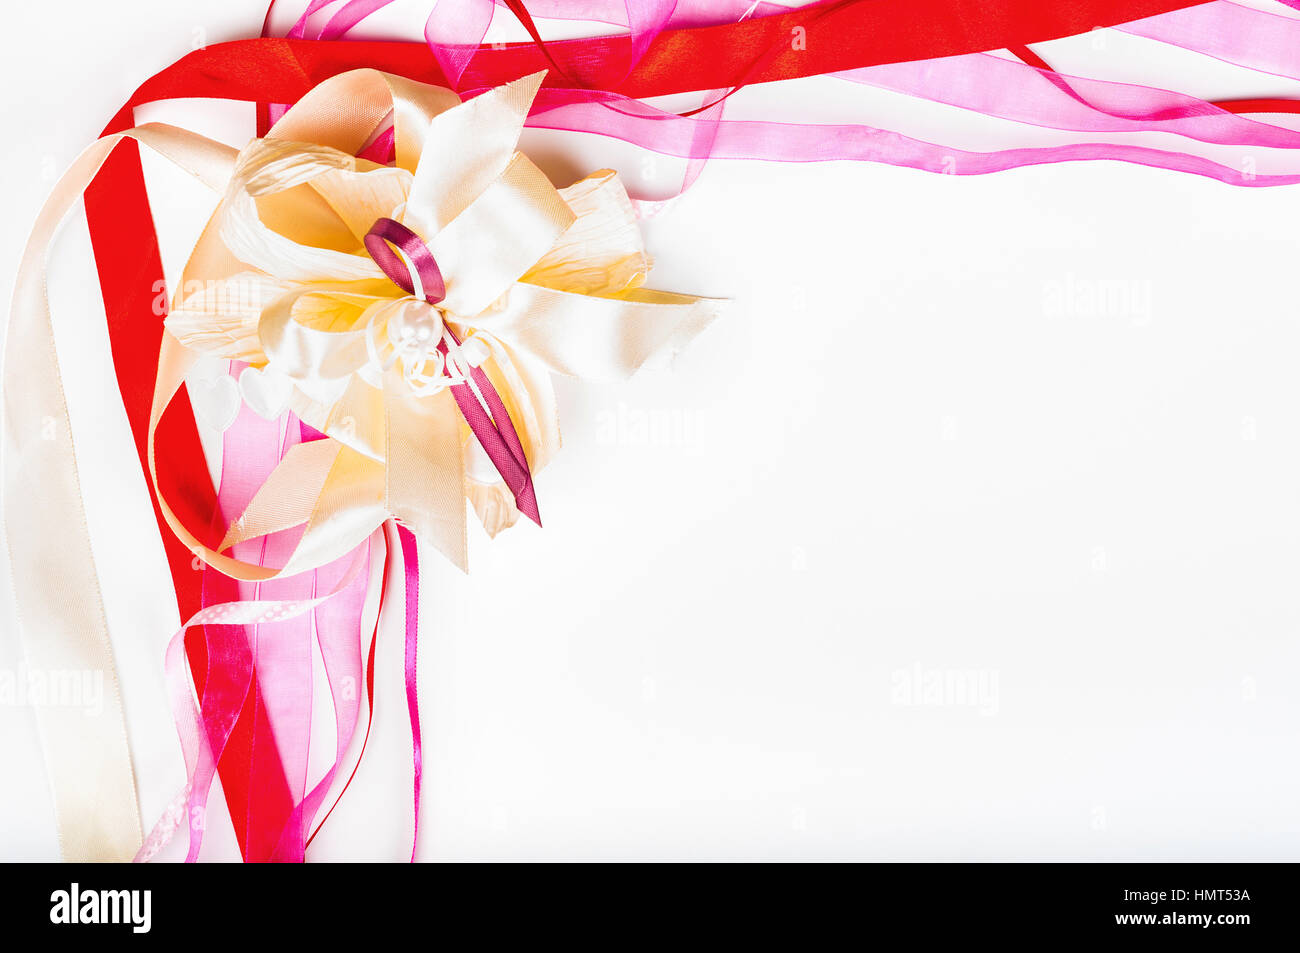 Valetine S Day Mother S Day Birthday Concept Colorful Ribbon